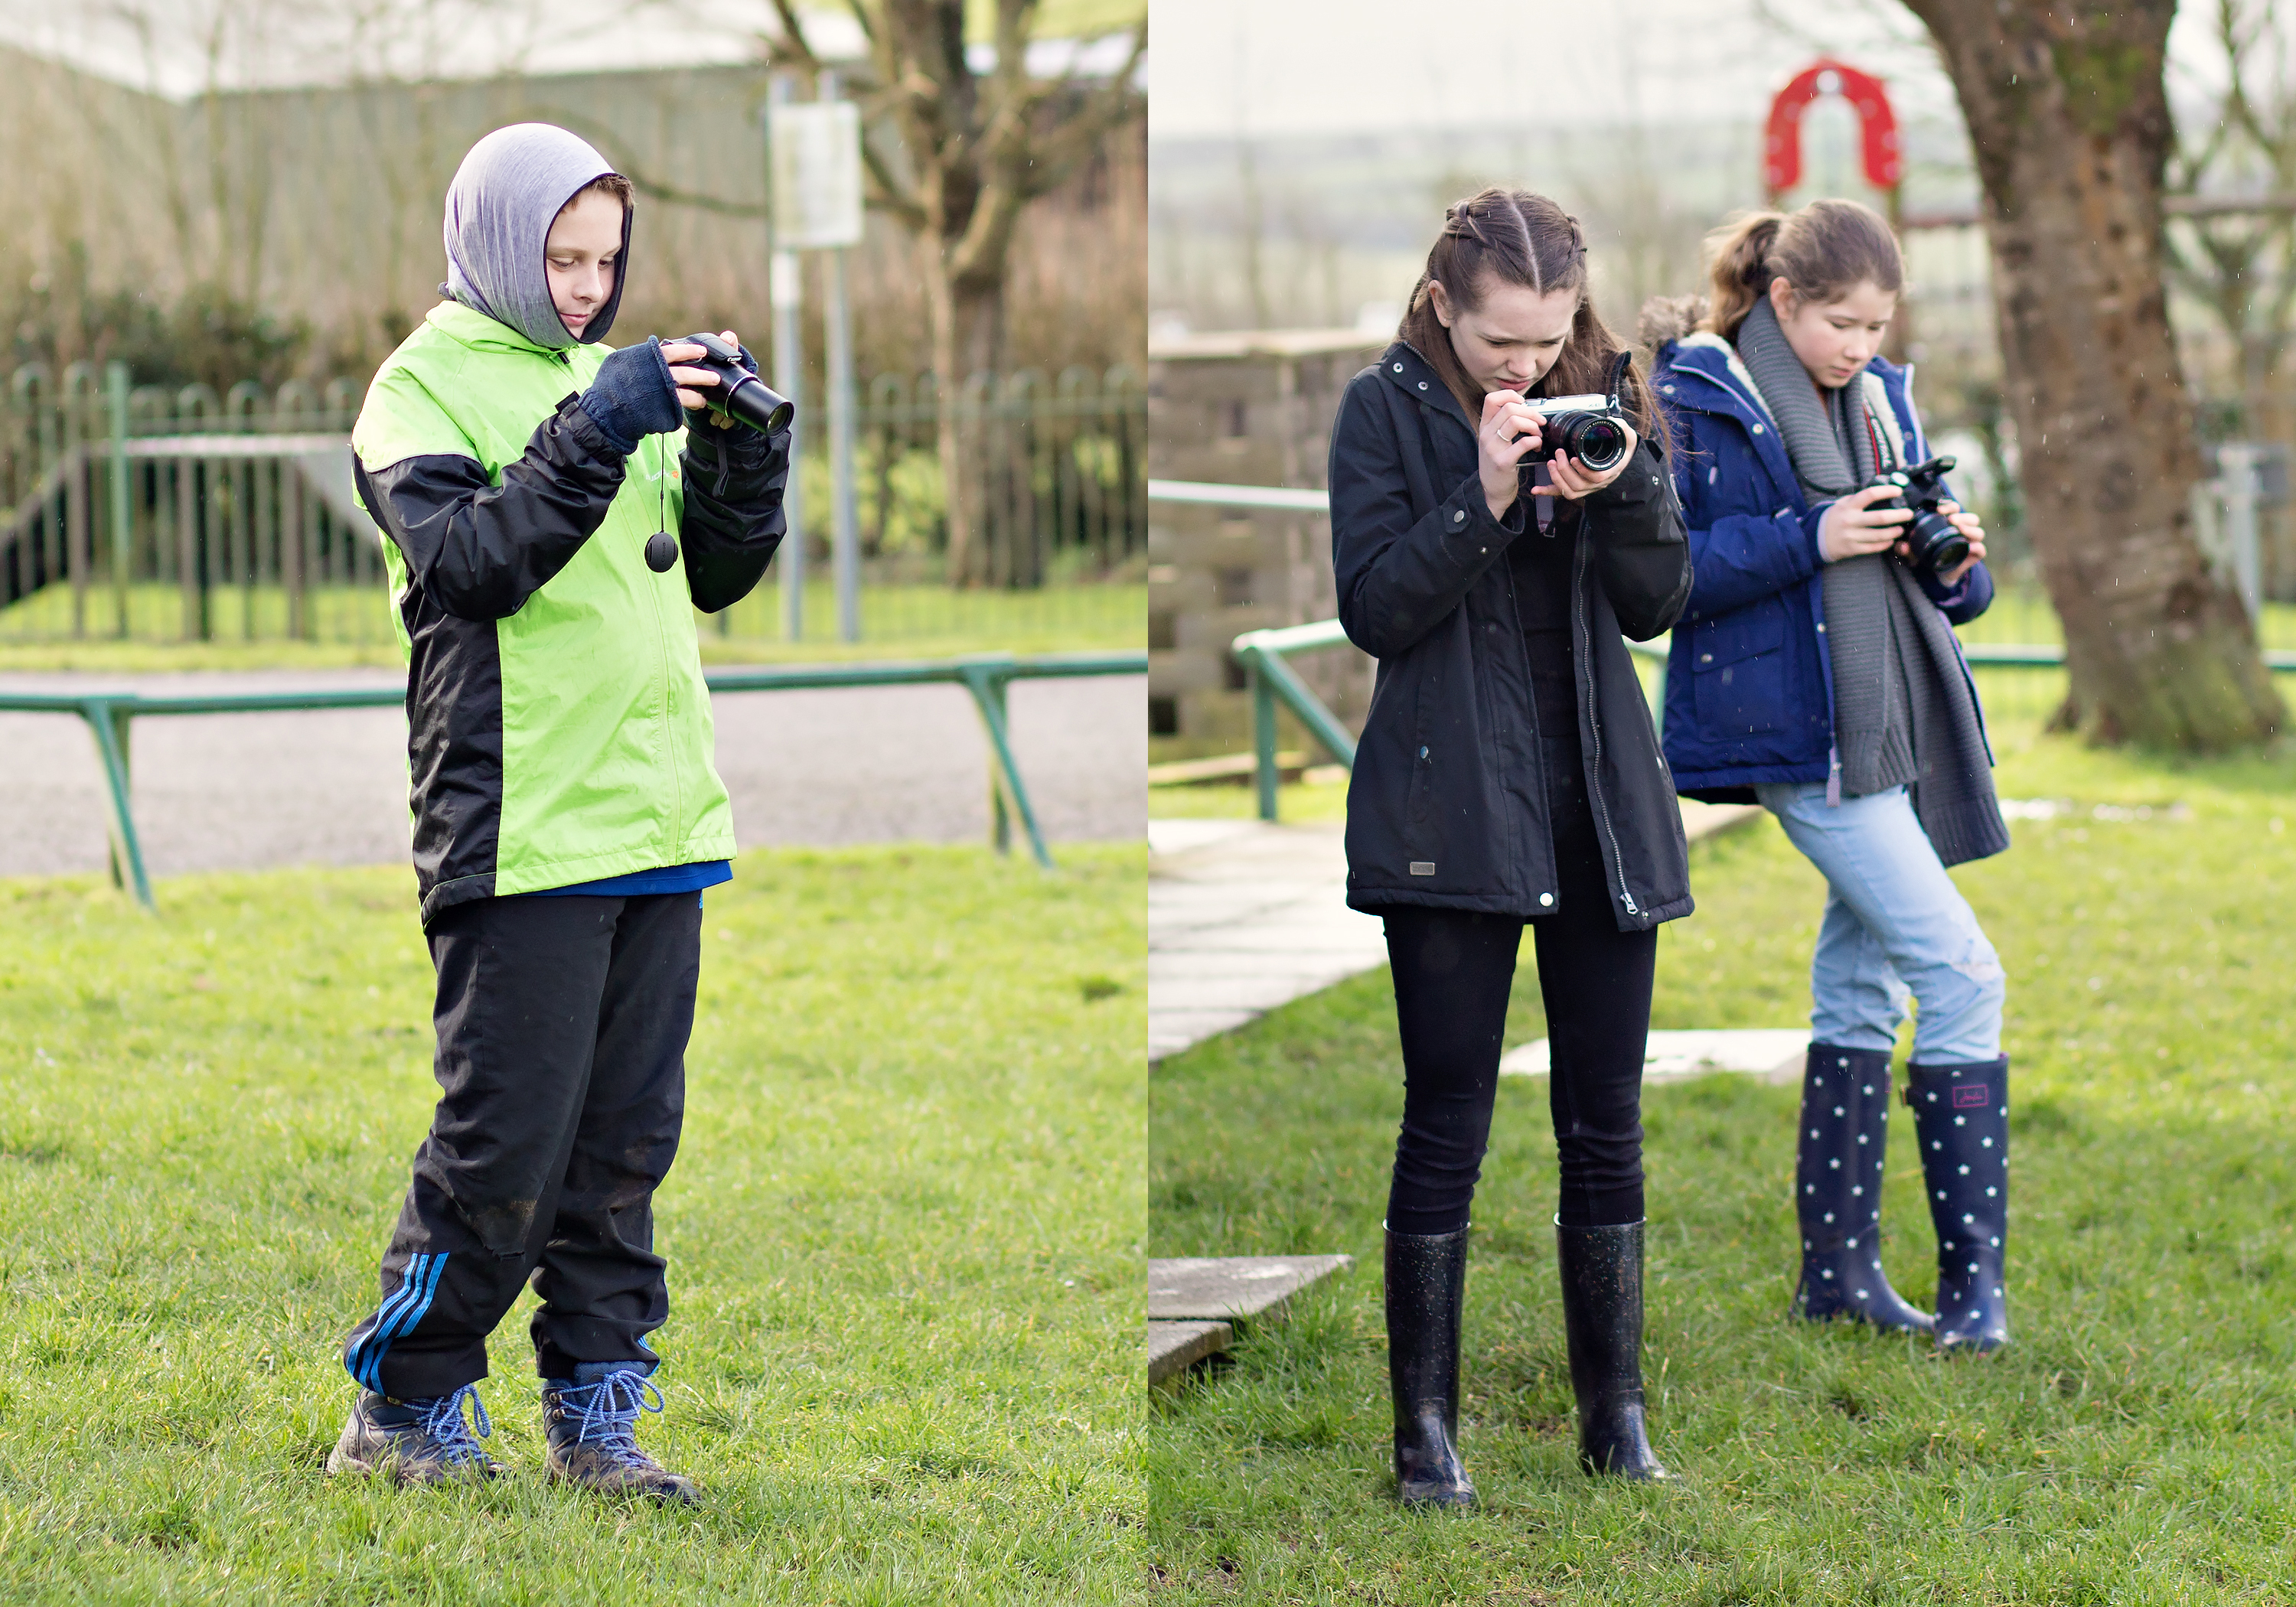 photography training cardiff teenagers